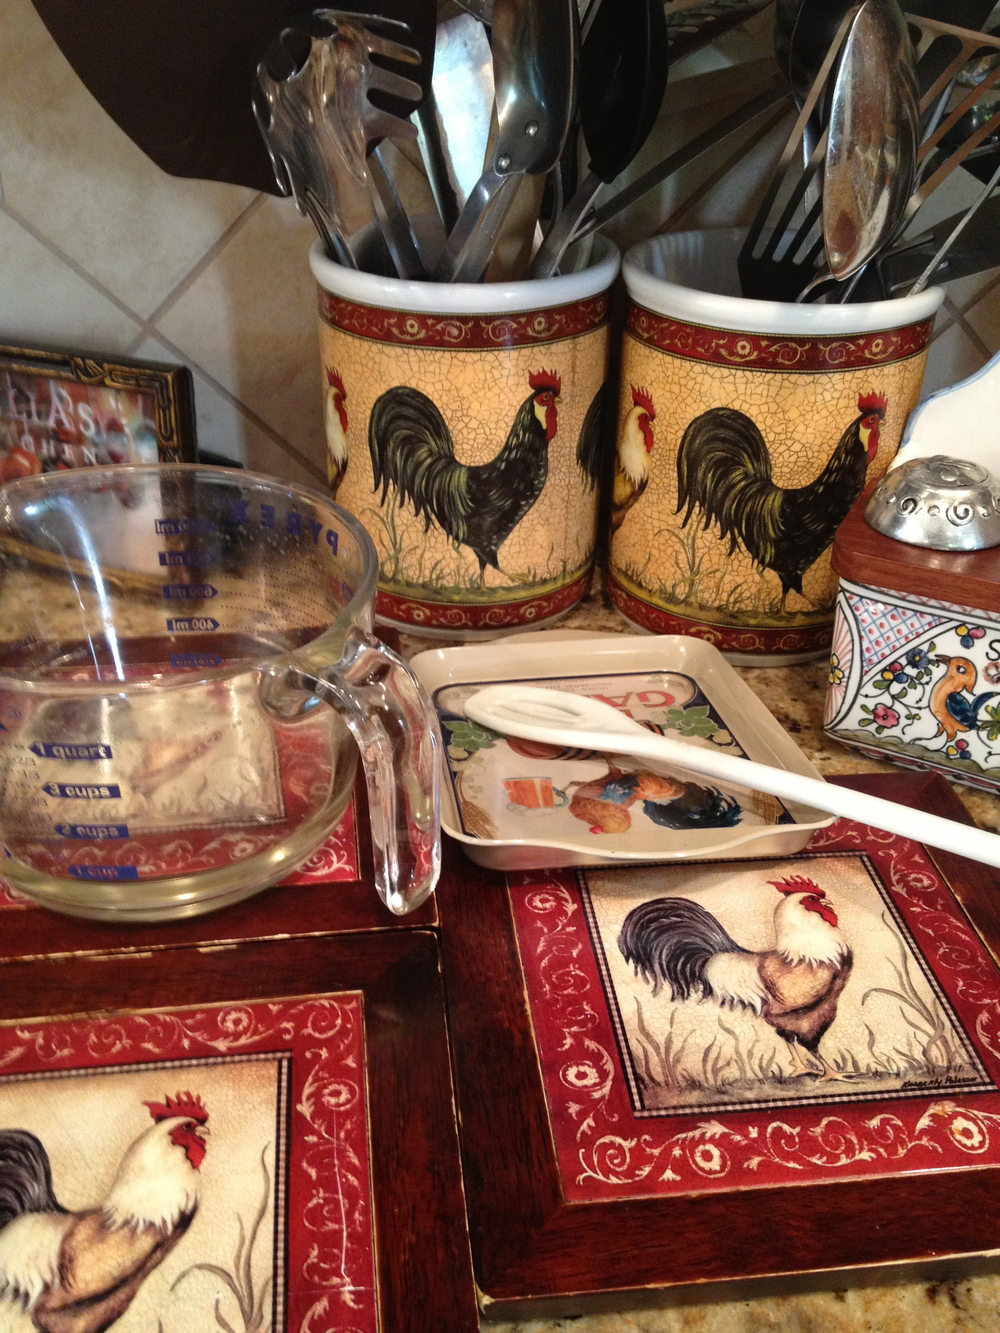 Roosters, Roosters -- everywhere!